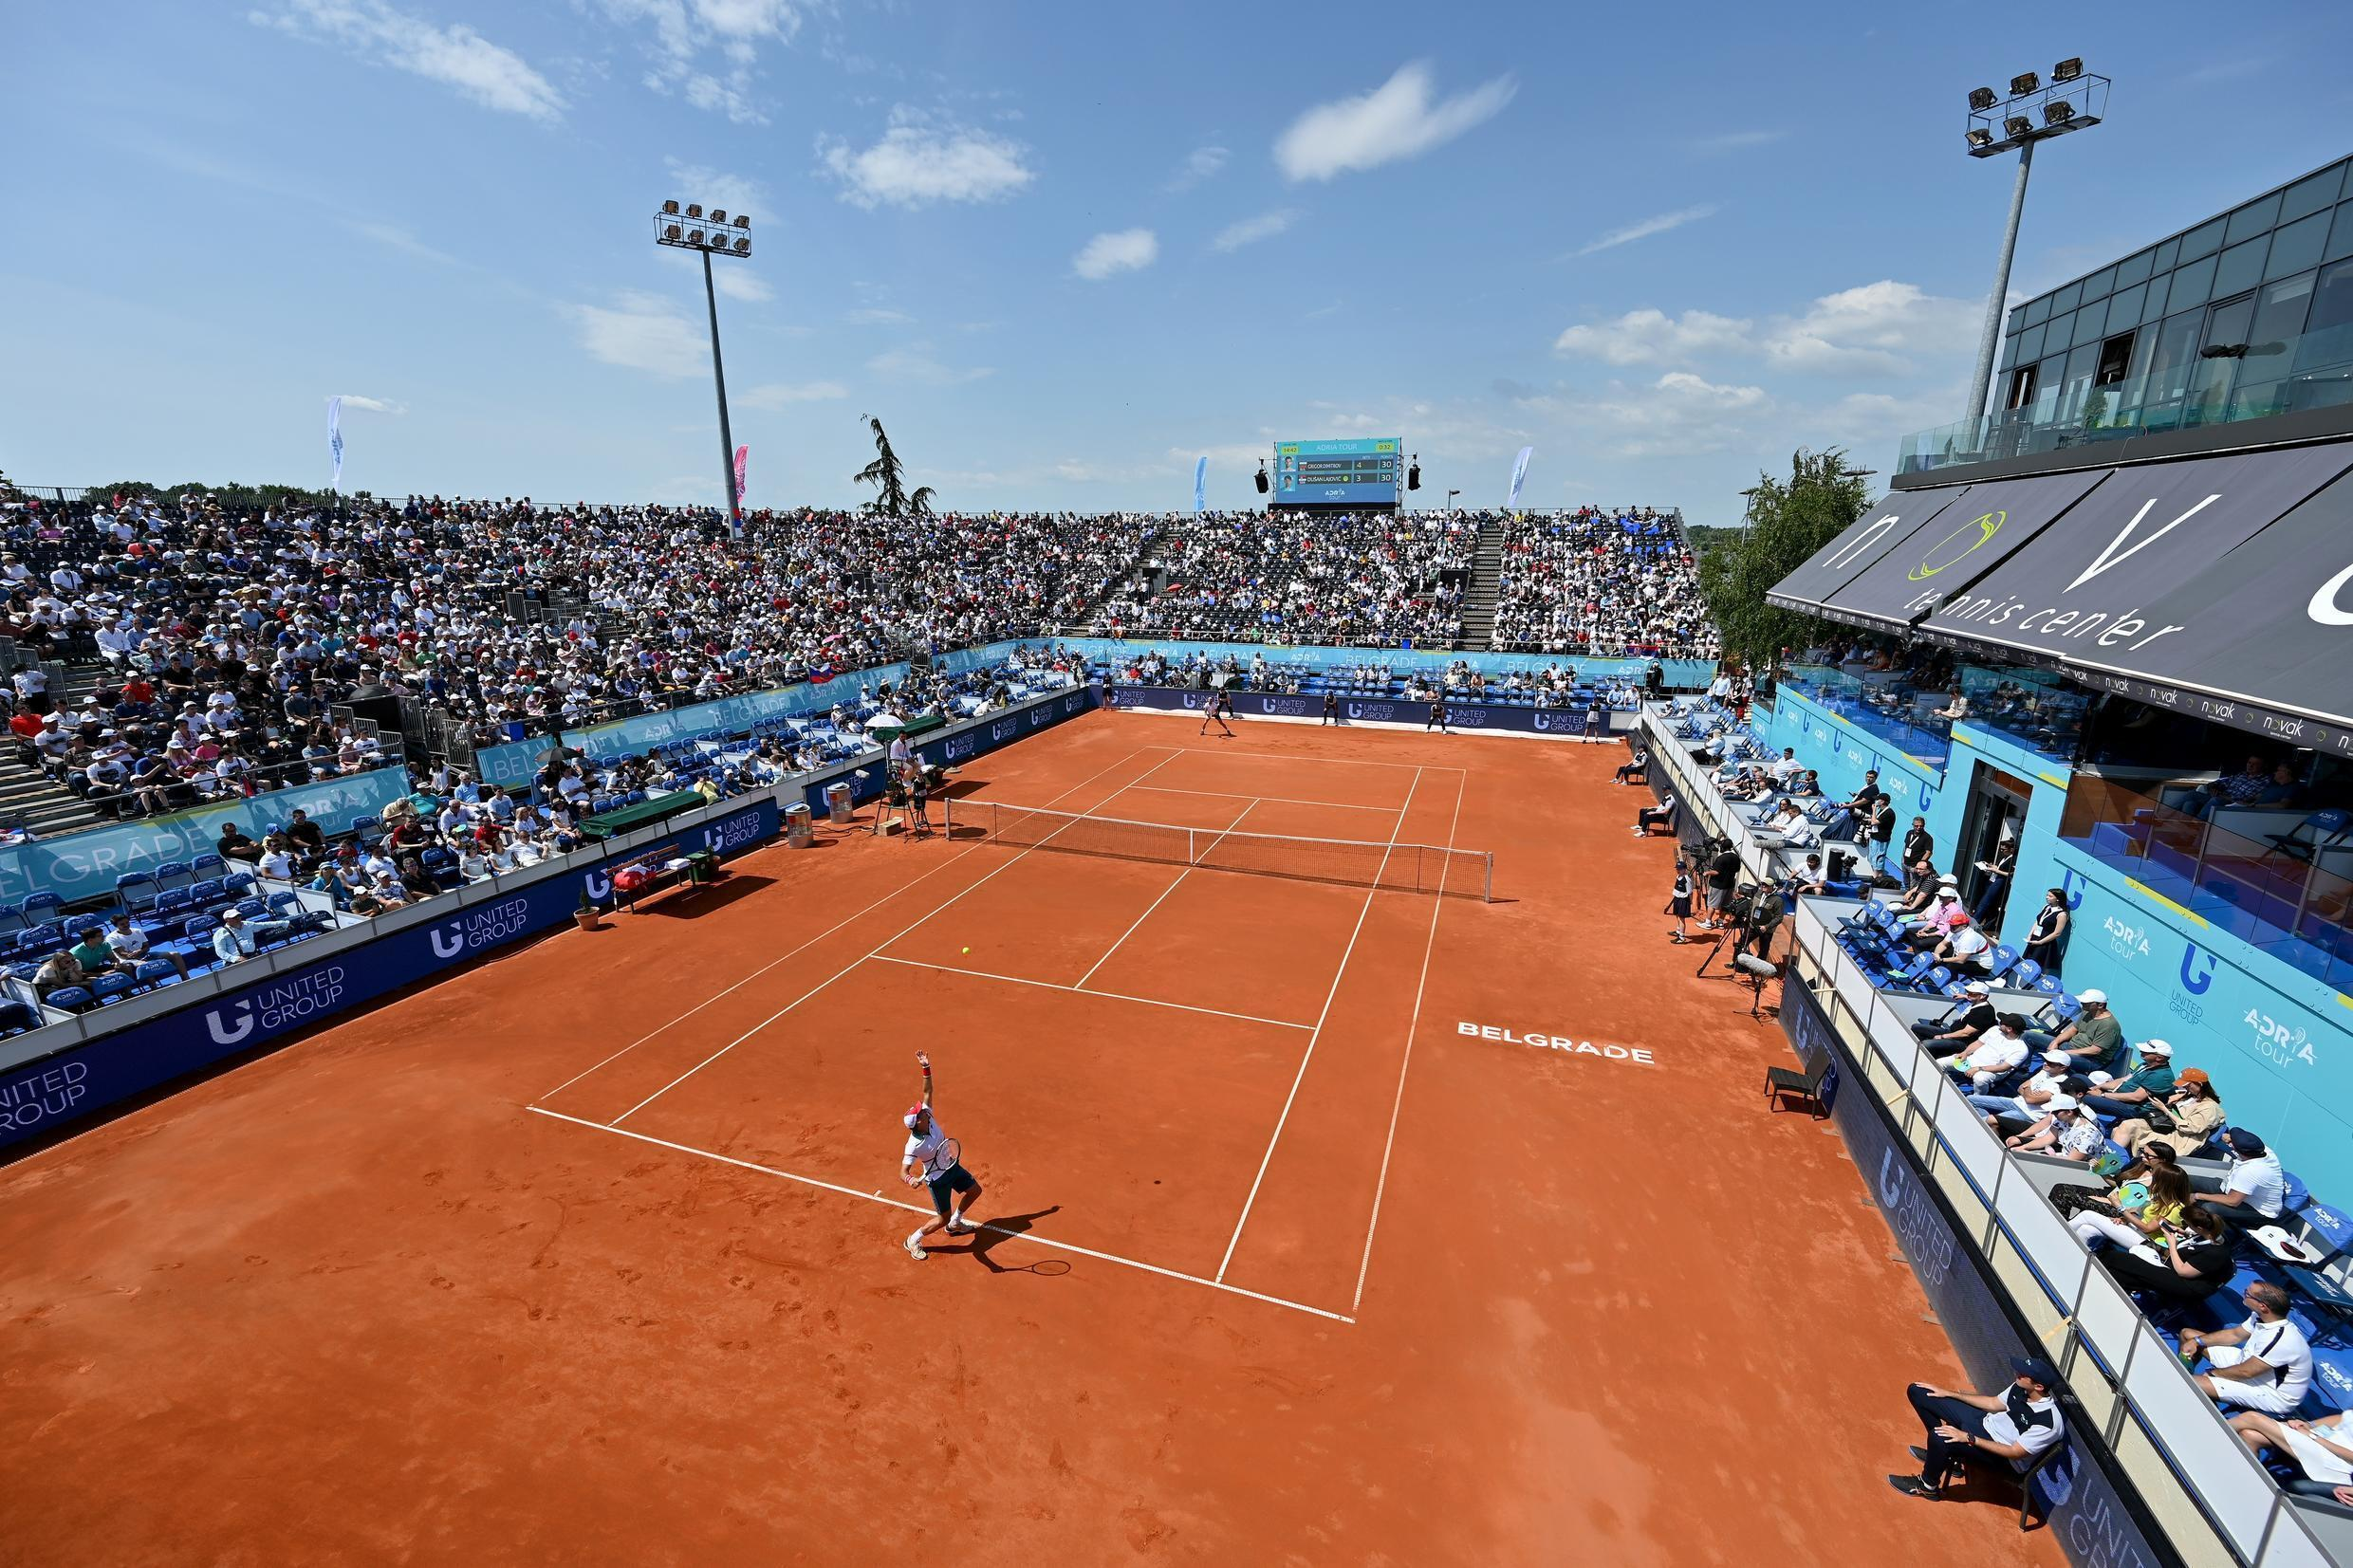 Serbia's Dusan Lajovic takes on Grigor Dimitrov of Bulgaria at the charity tournament hosted by Novak Djokovic, on June 13, 2020 in Belgrade.